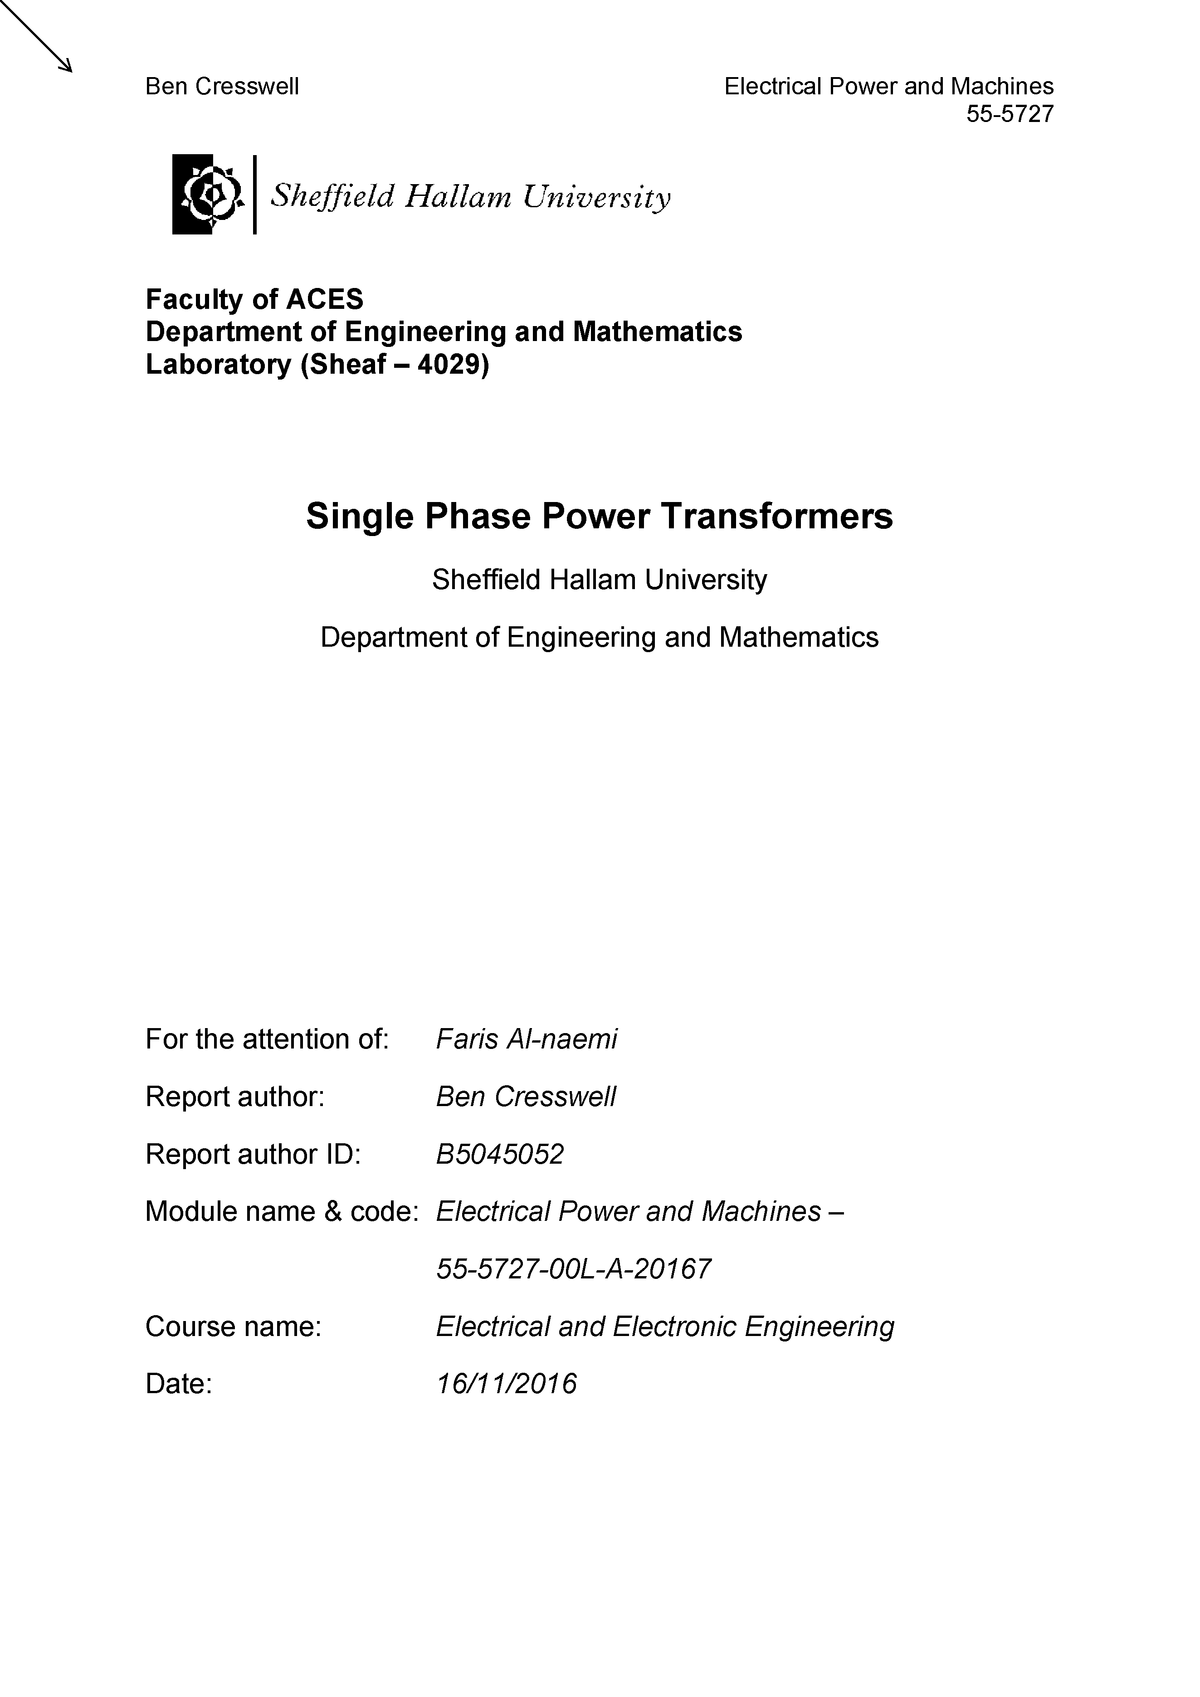 Single Phase Power Transformer Lab Report - power electronics and